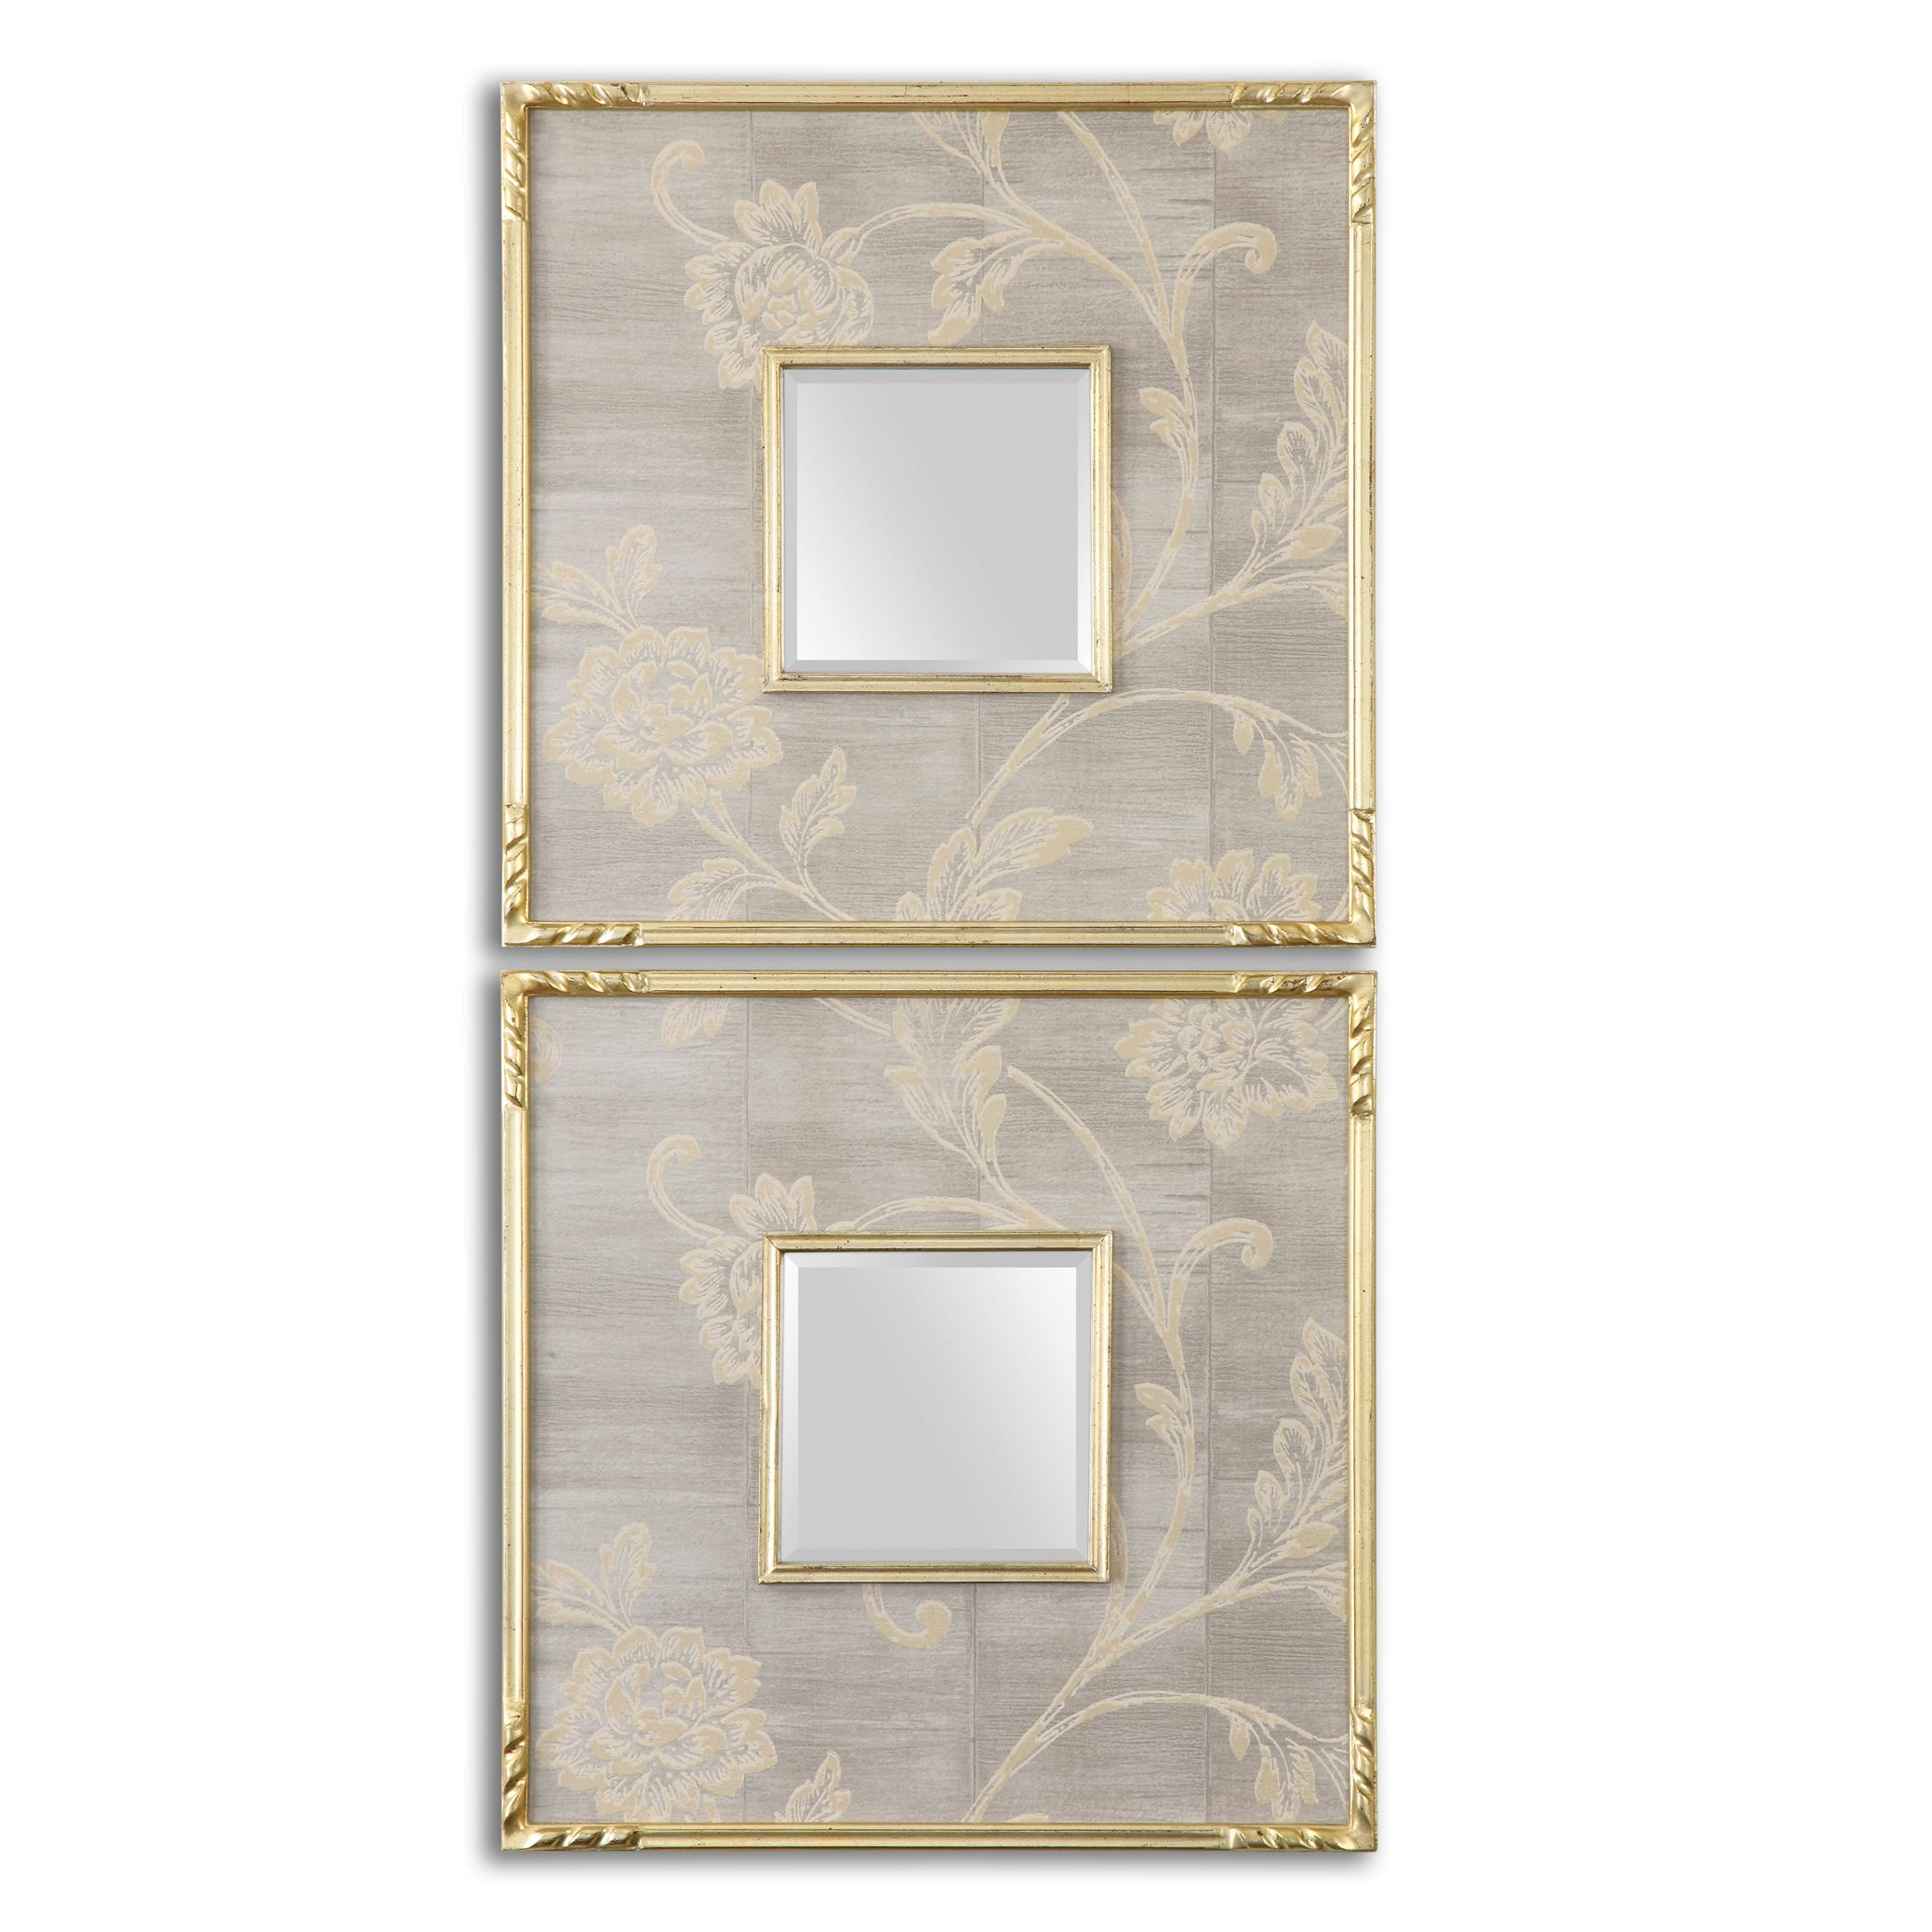 Uttermost Mirrors Evelyn Square Mirrors, Set of 2 - Item Number: 14493